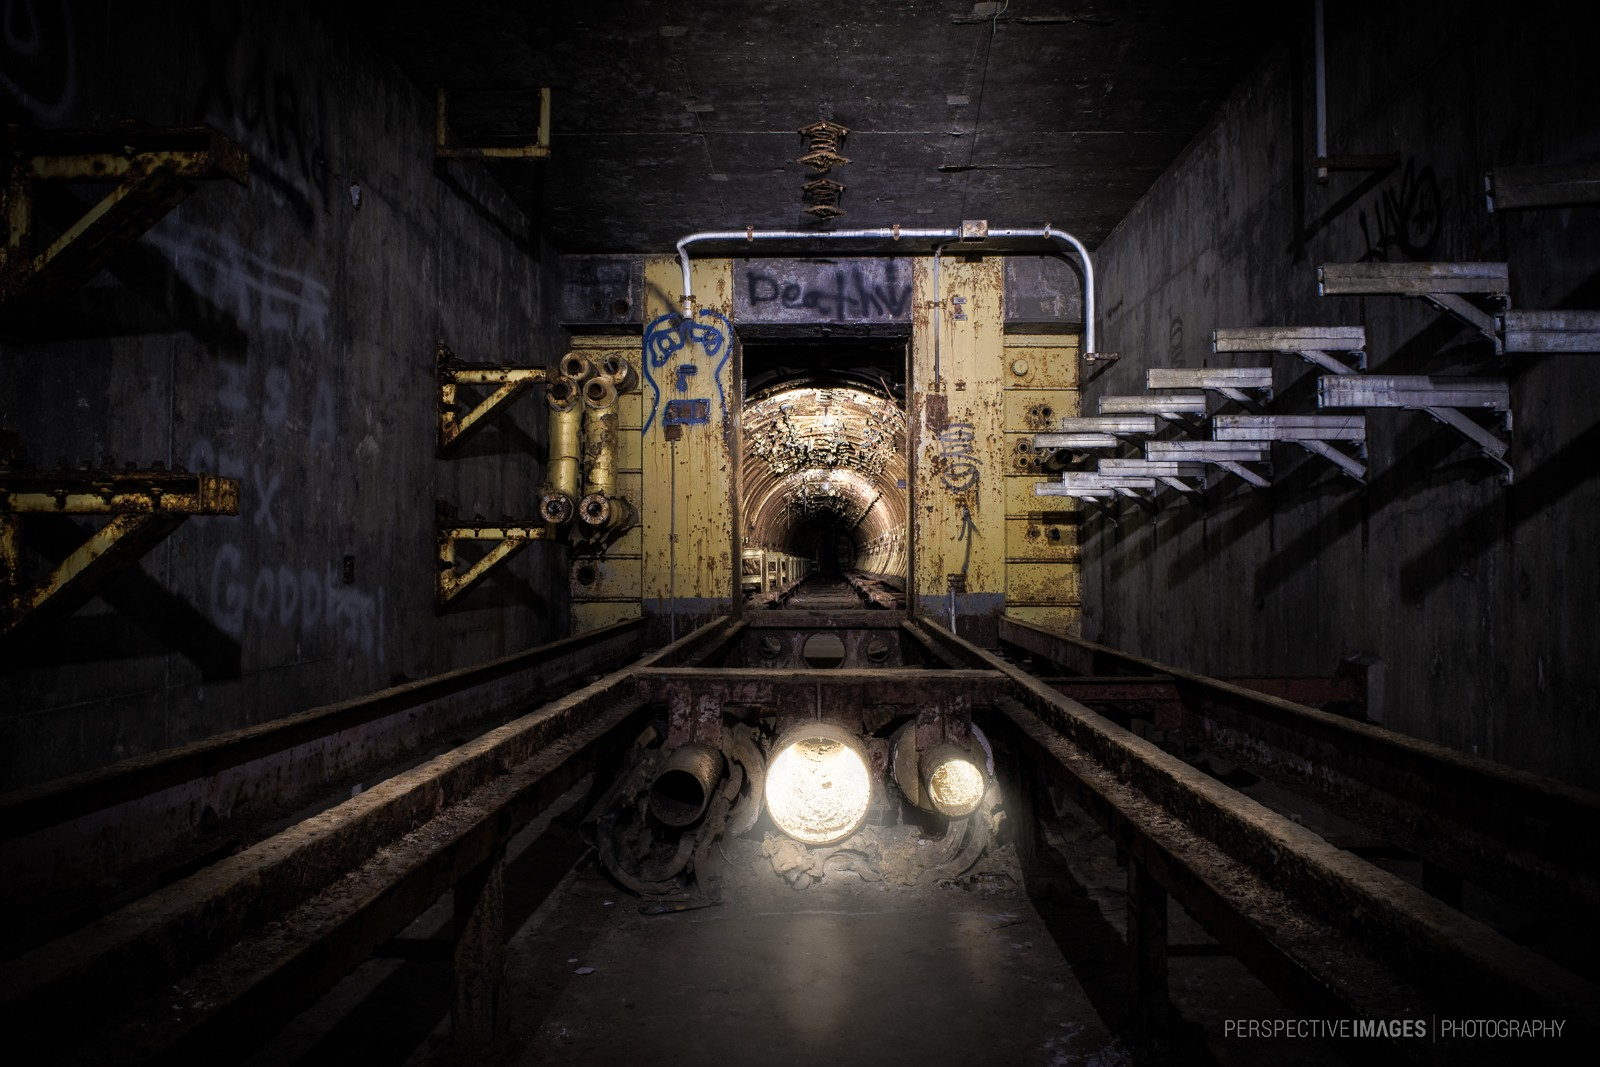 Burning Light - The entrance to launch area 1 of a Titan 1 missile base.